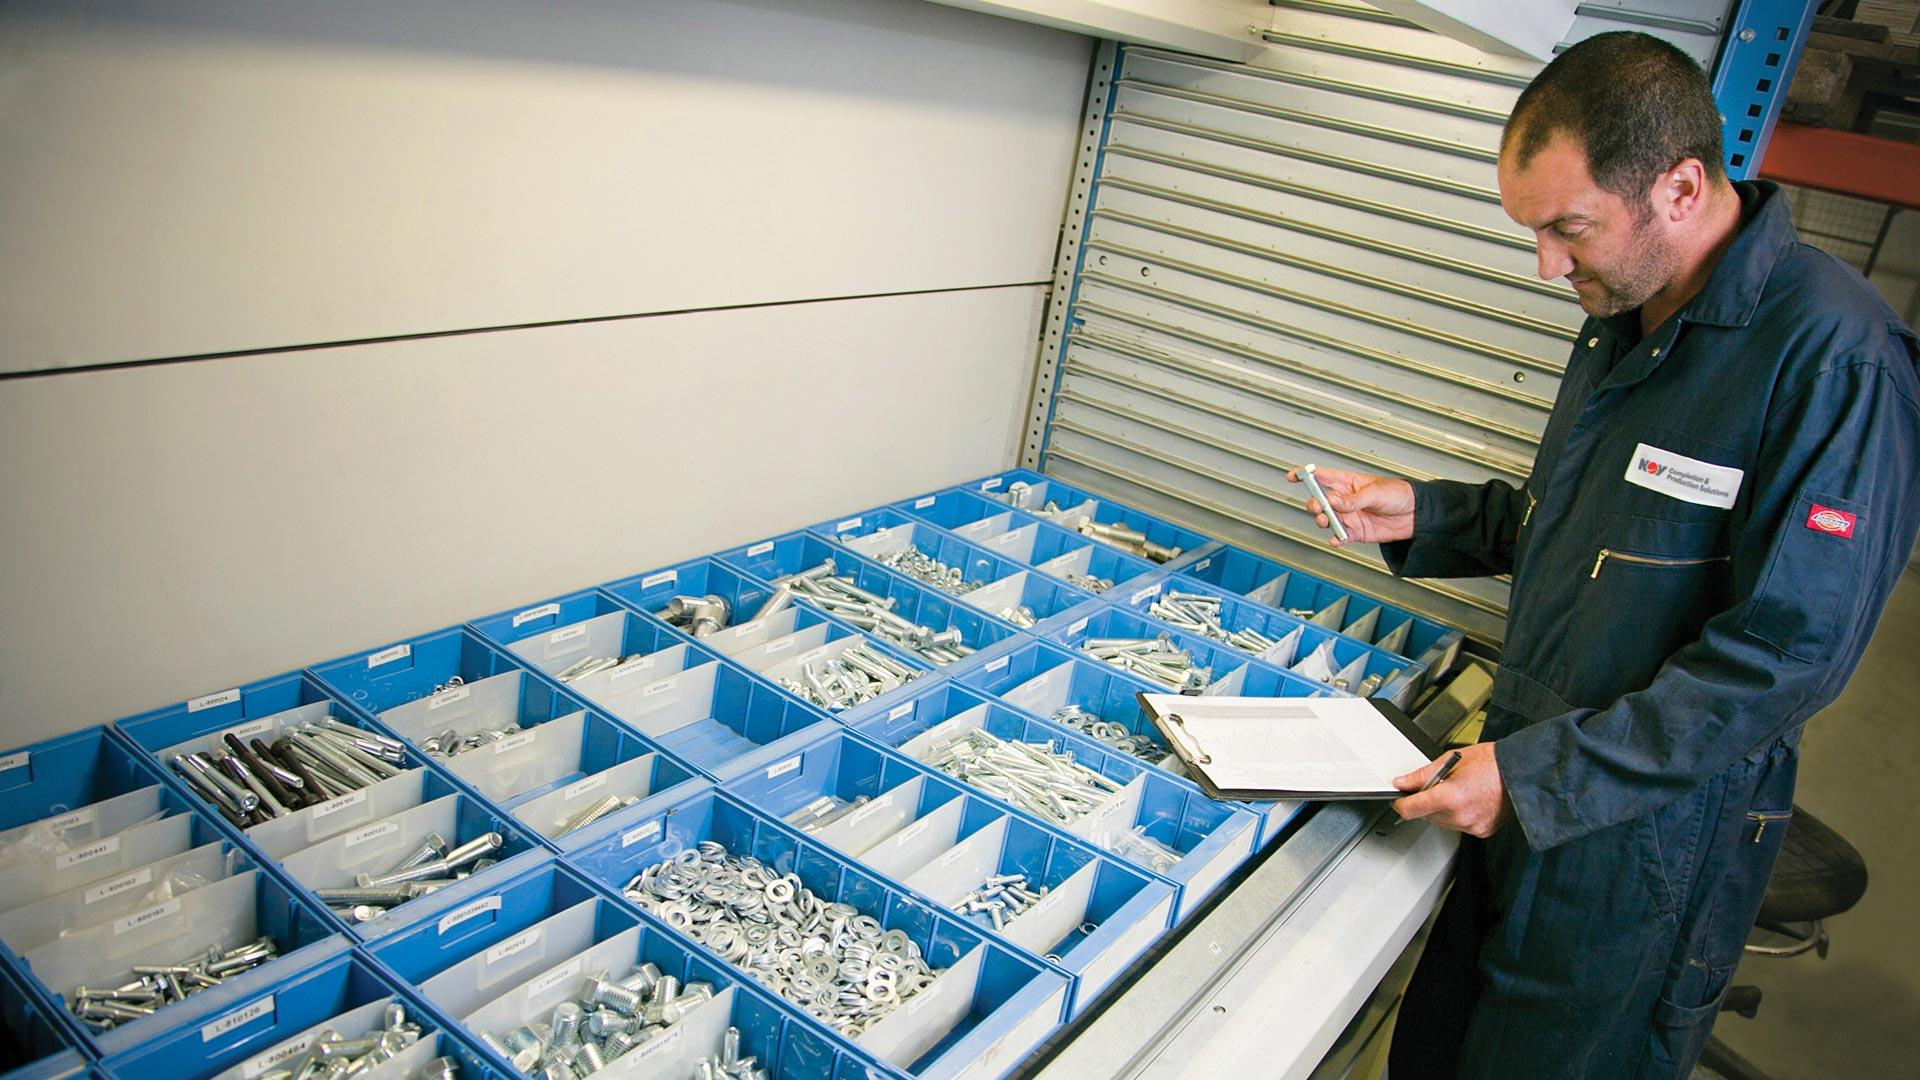 NOV technician reviewing bins of Wireline PCE Spares and Operational Accessories